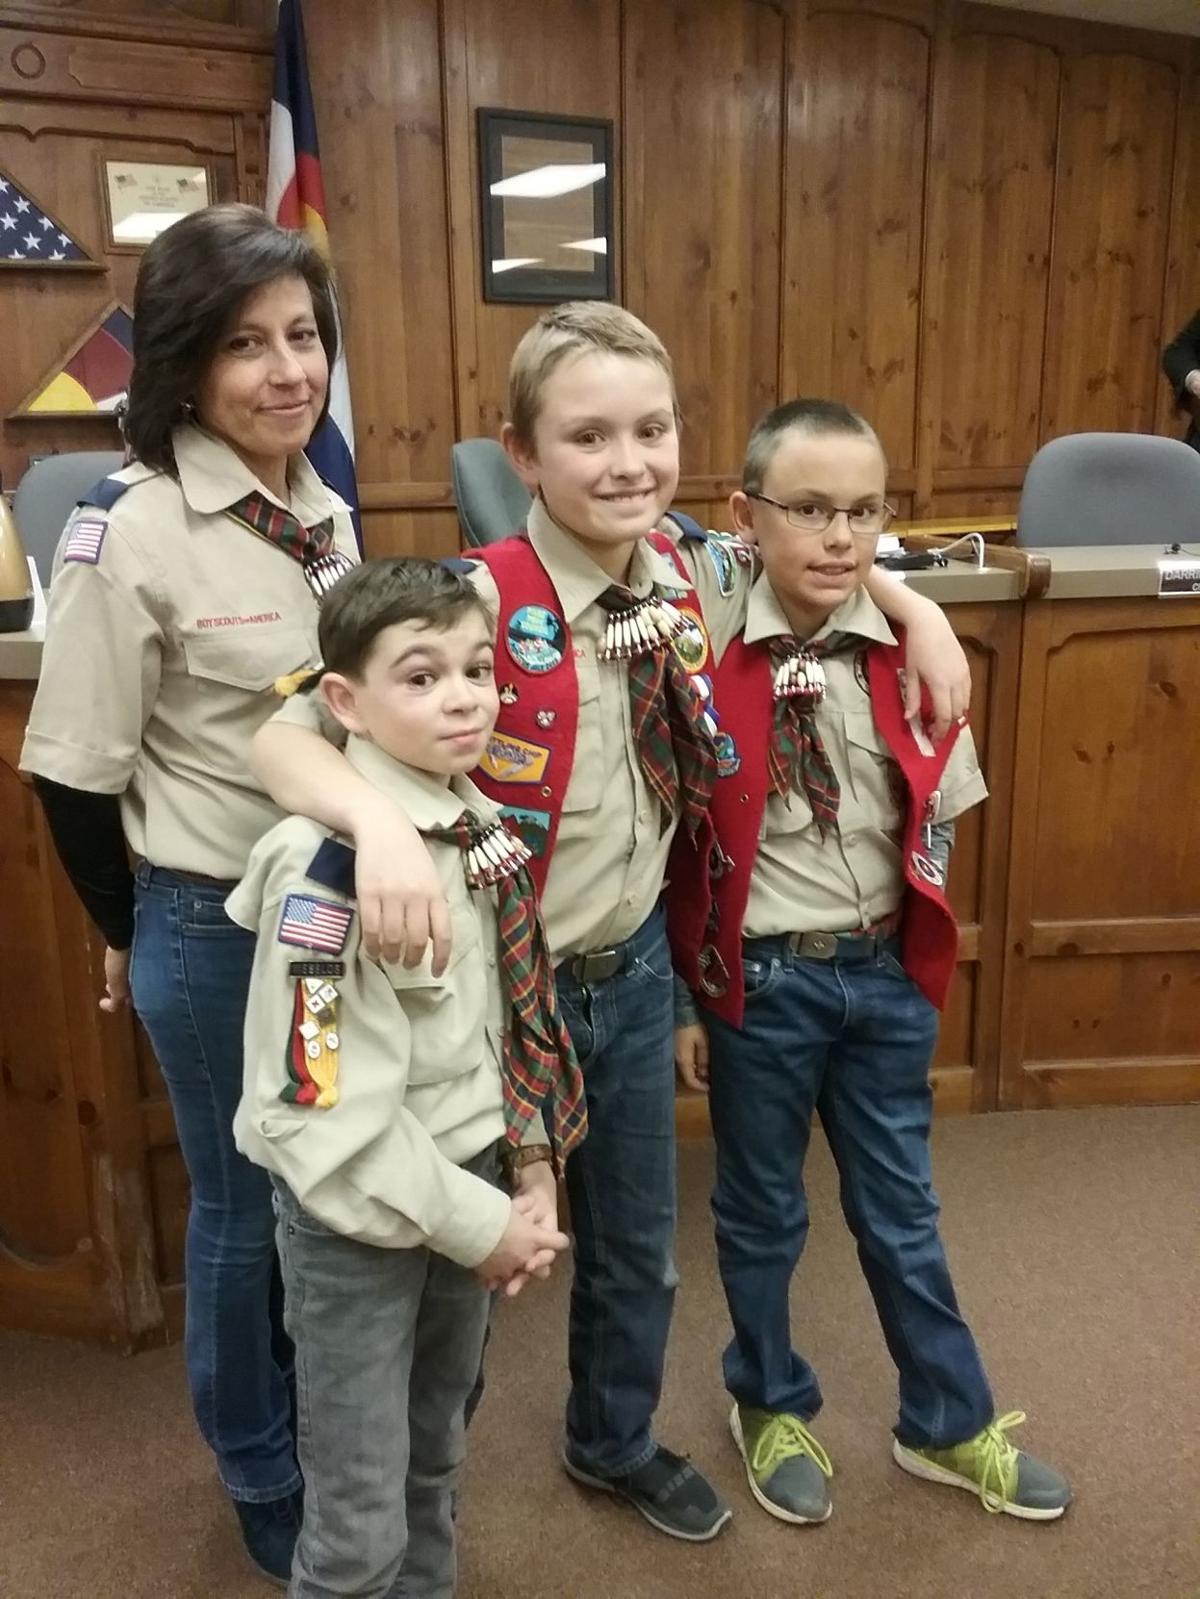 Arrow of Light Cub Scout Troop 20